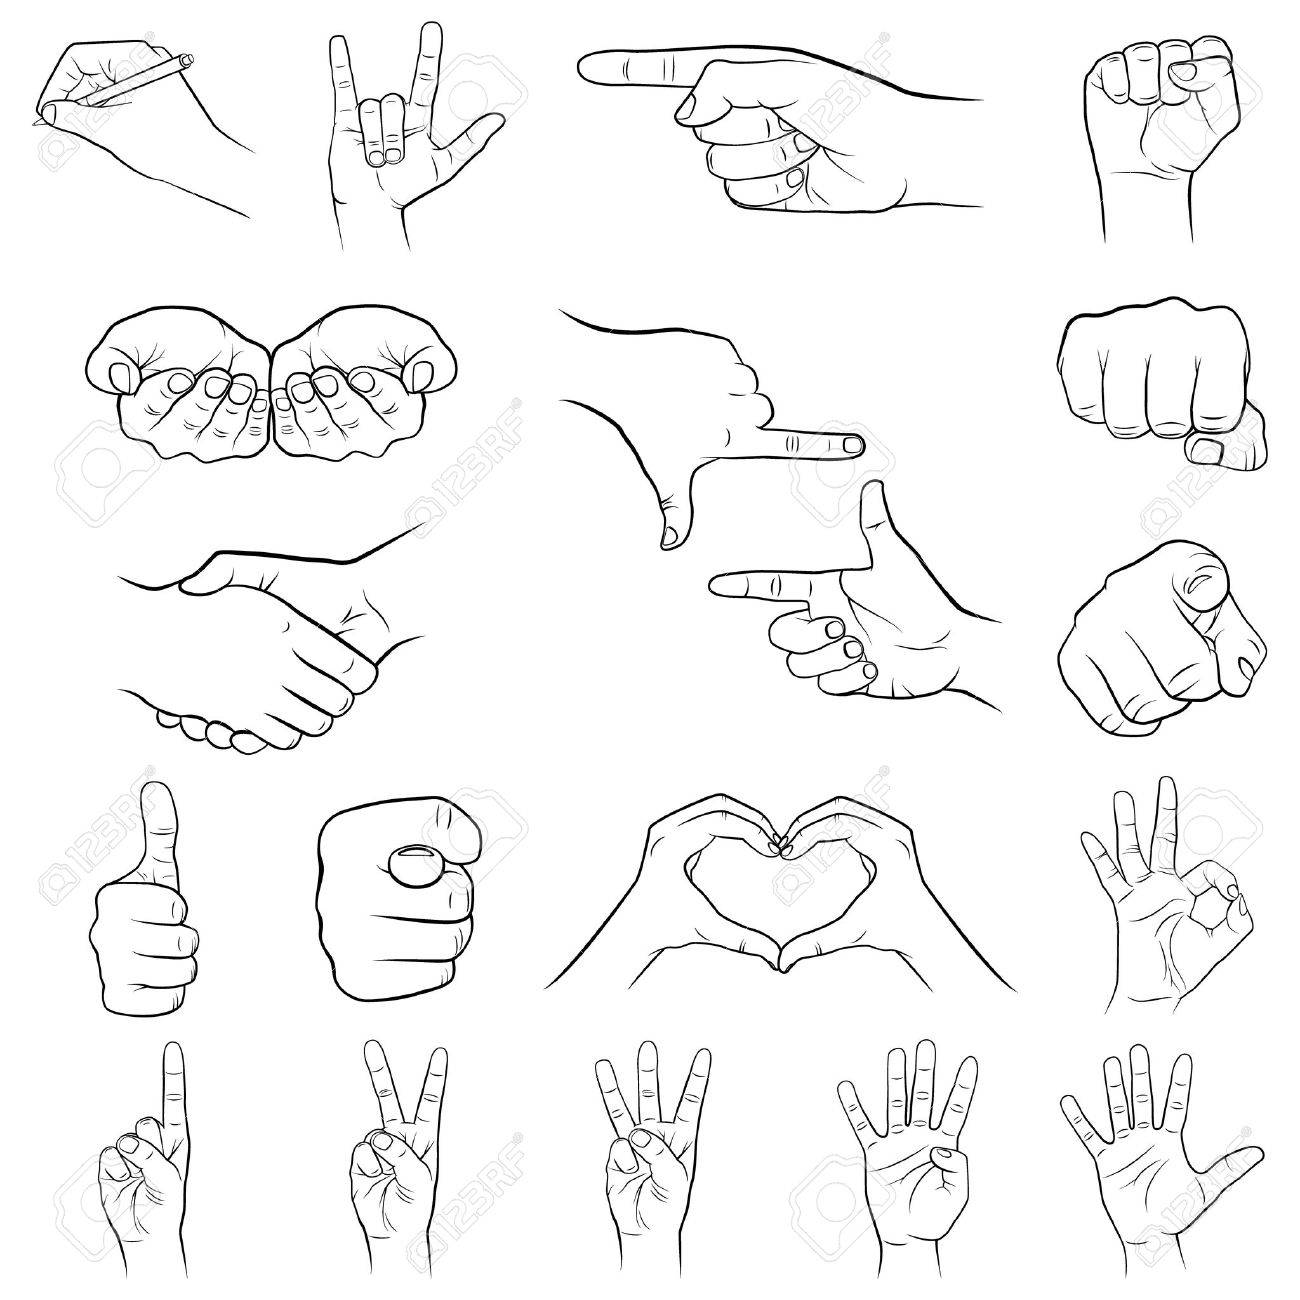 Set of hand gestures on a white background. Vector illustration. - 36933272